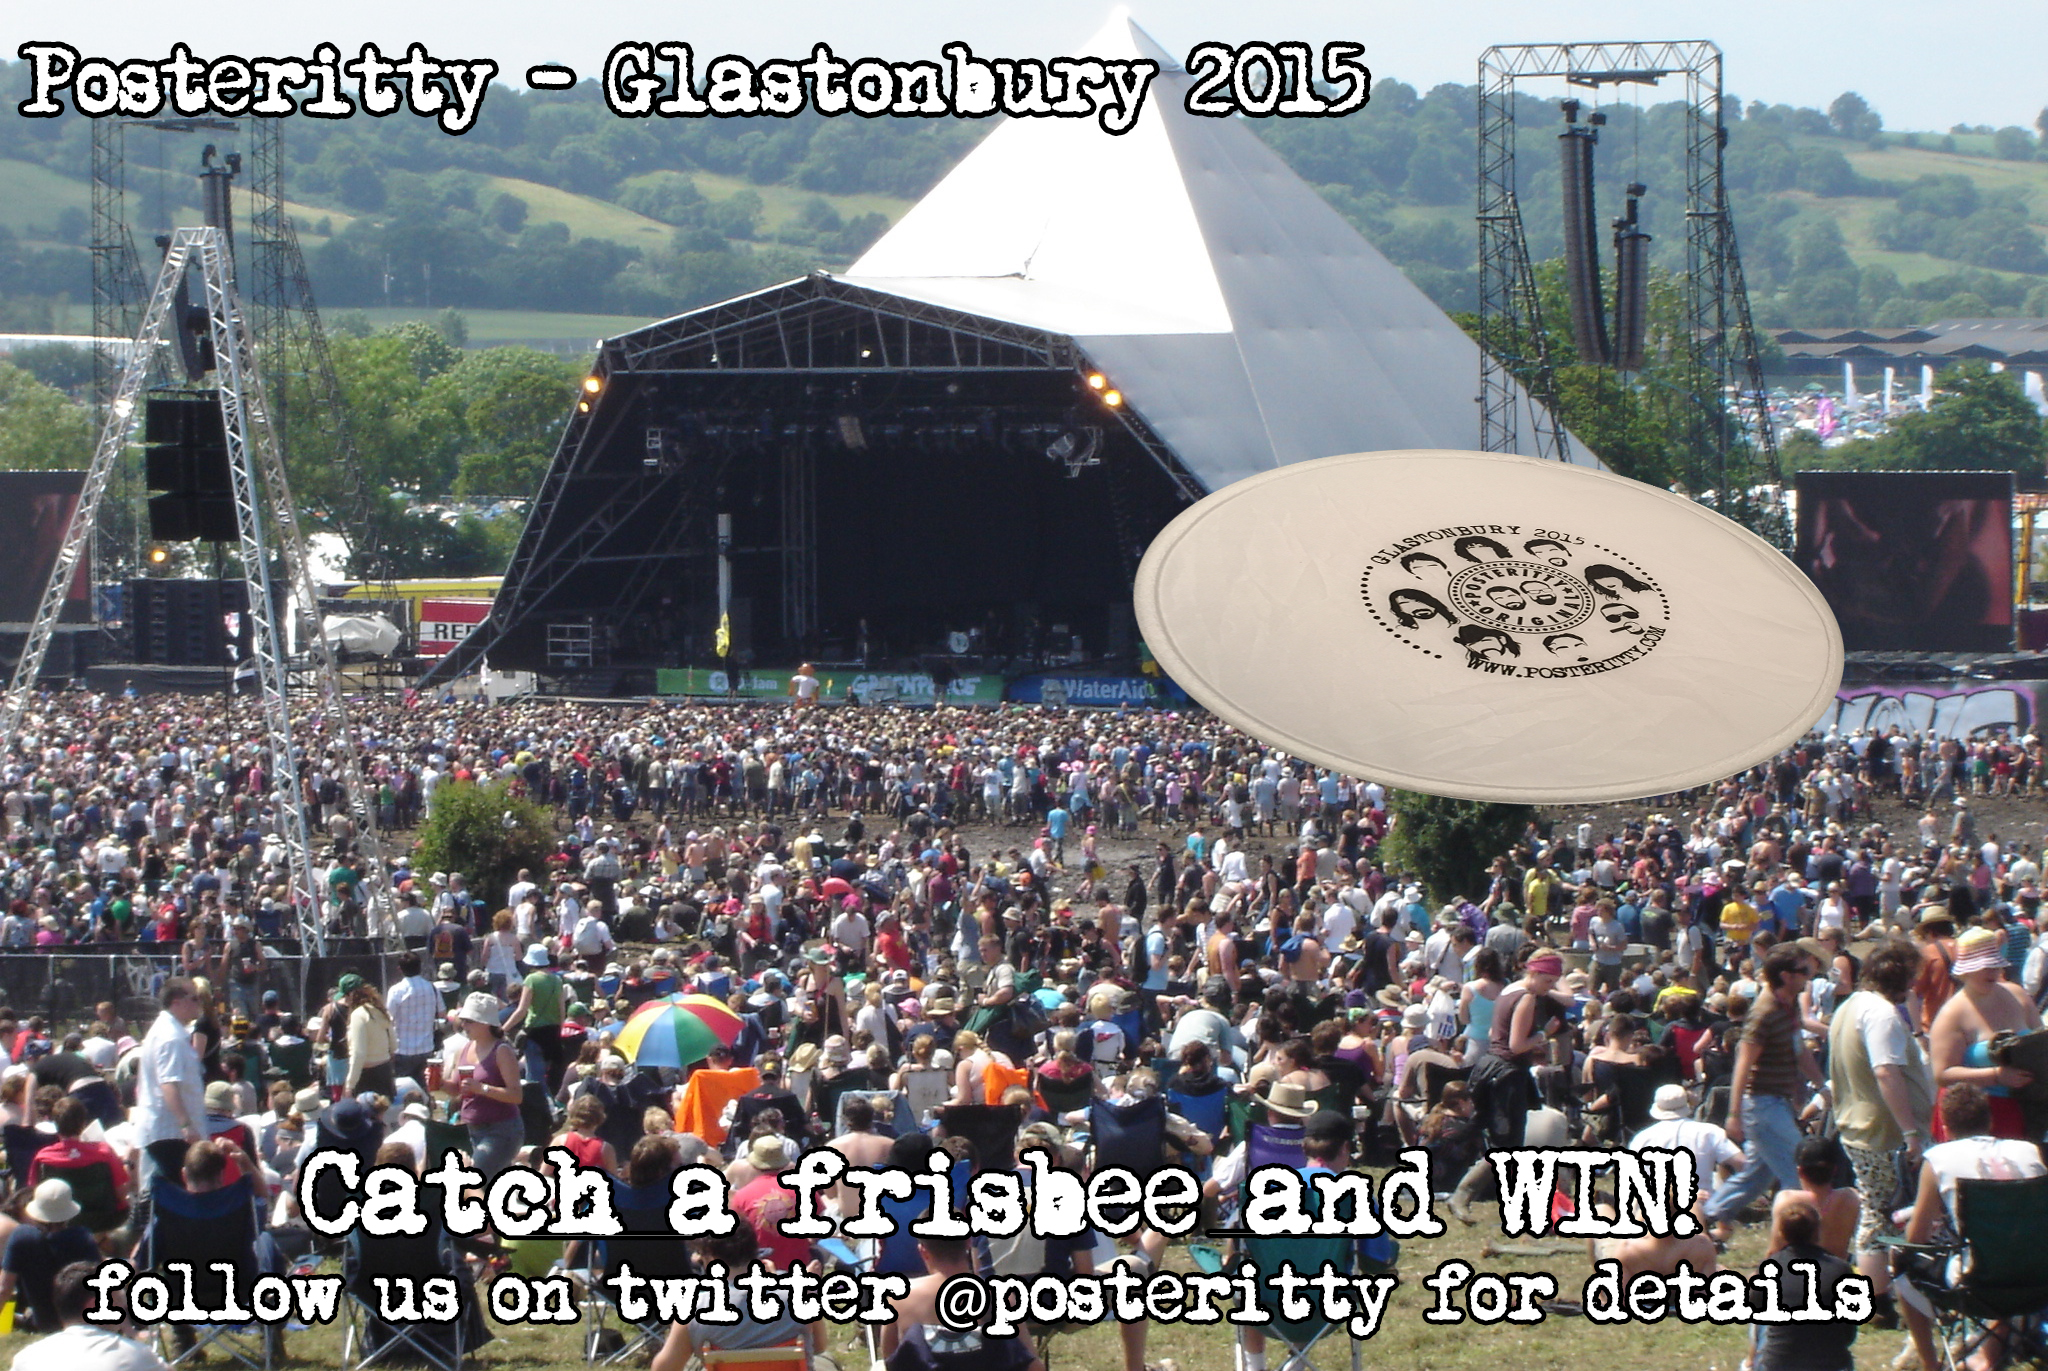 Glastonbury_2015_Posteritty_Frisbee_Competition